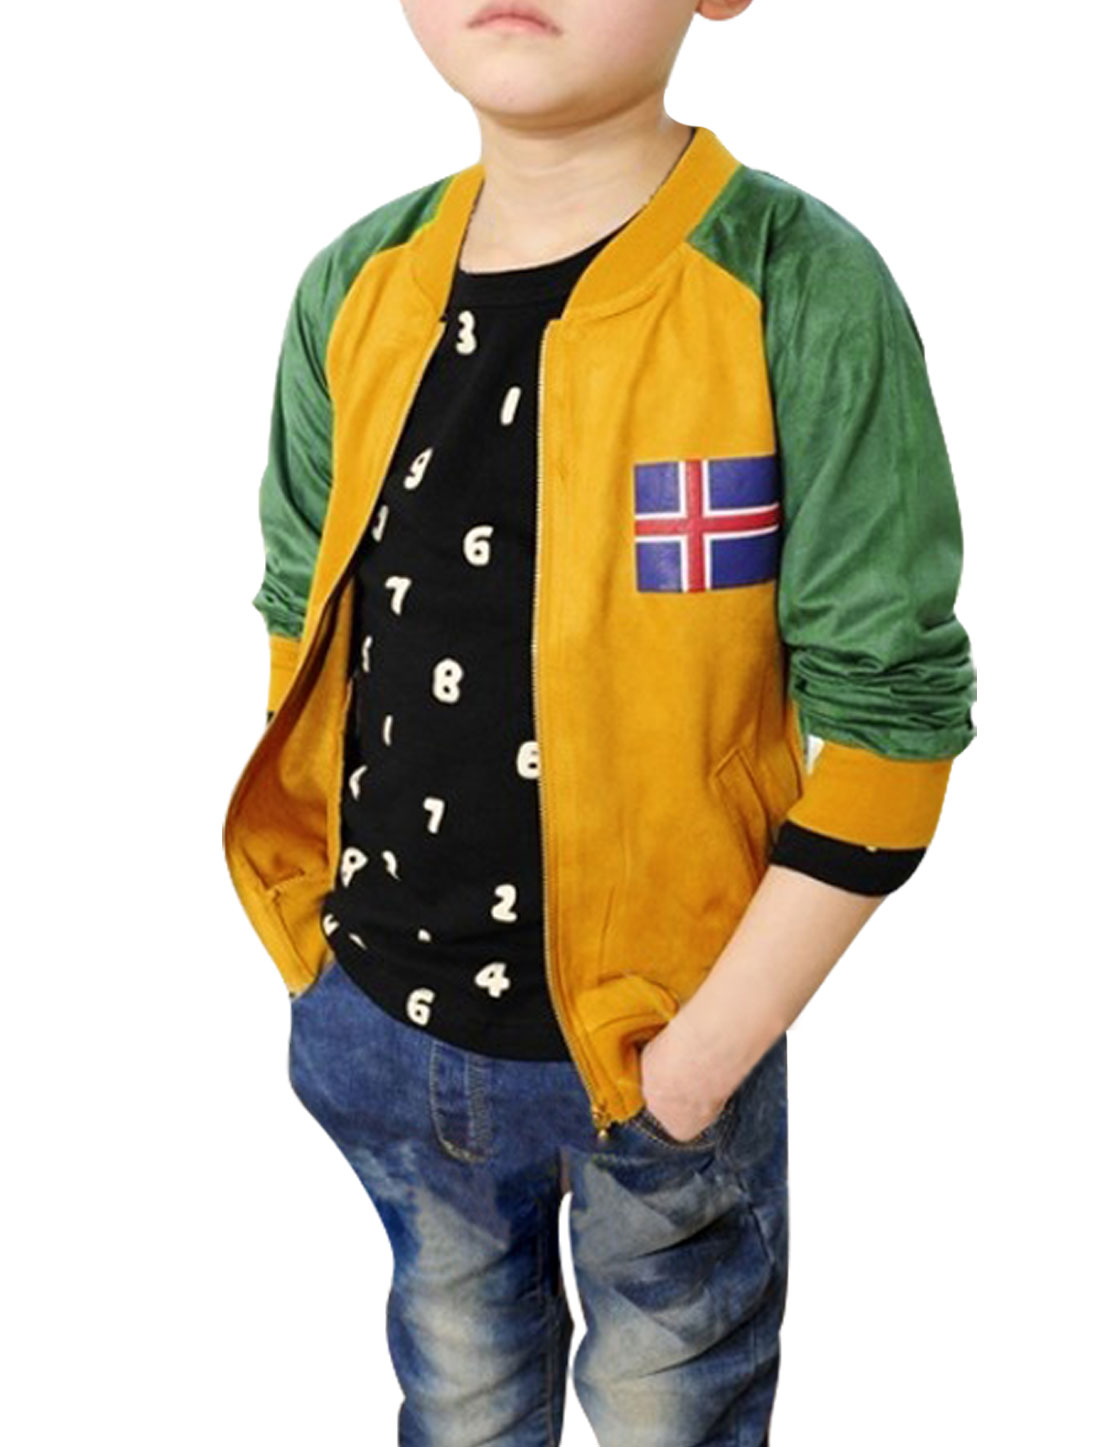 Green Curry 8 Raglan Sleeve Zipper Closure Top Jackets for Boys